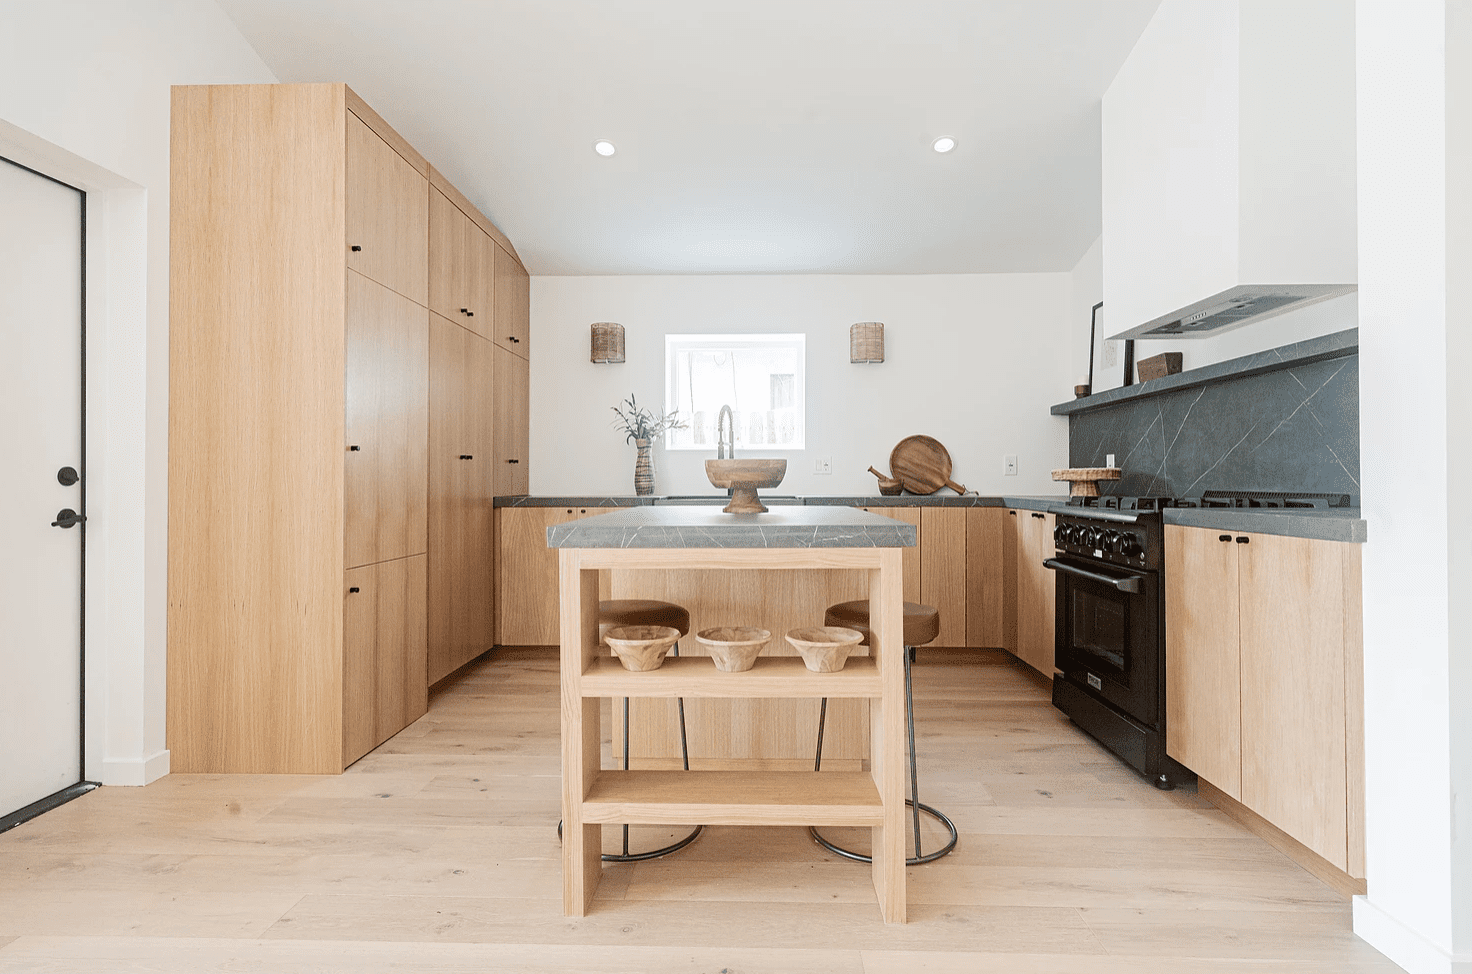 An open-concept kitchen lined with natural wood and charcoal marble